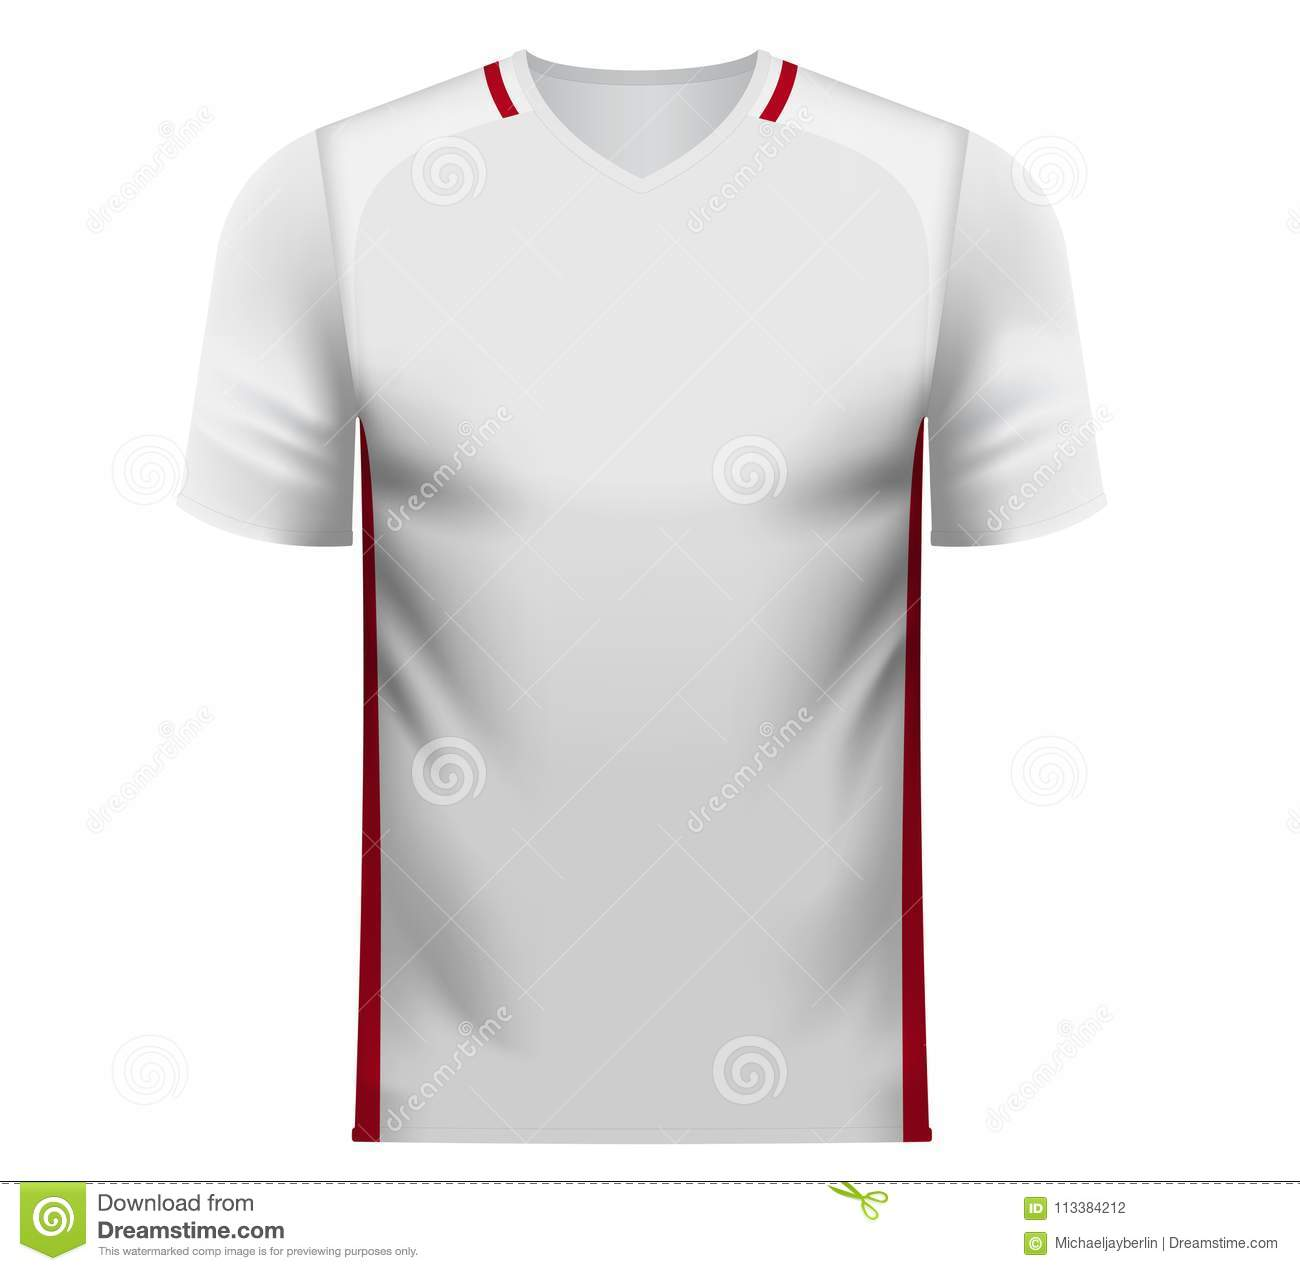 fdf121b58ca Poland national soccer team shirt in generic country colors for fan apparel.